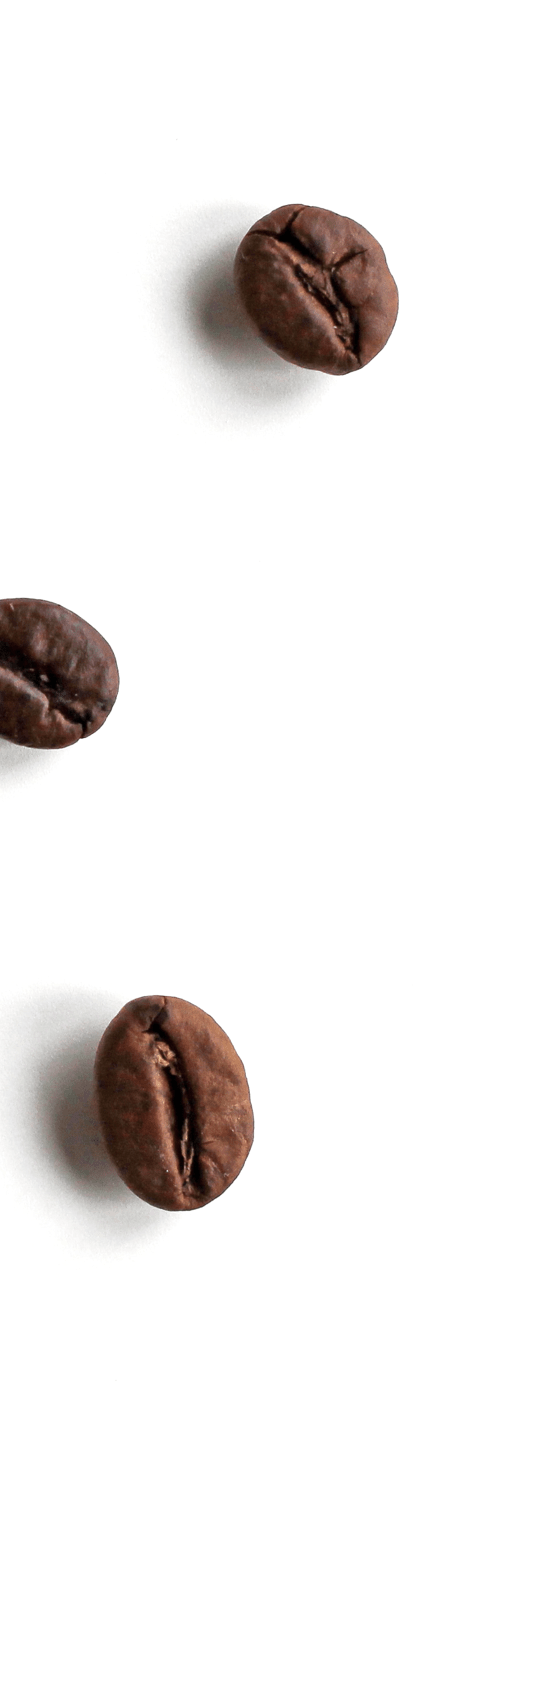 coffee bean parallax image